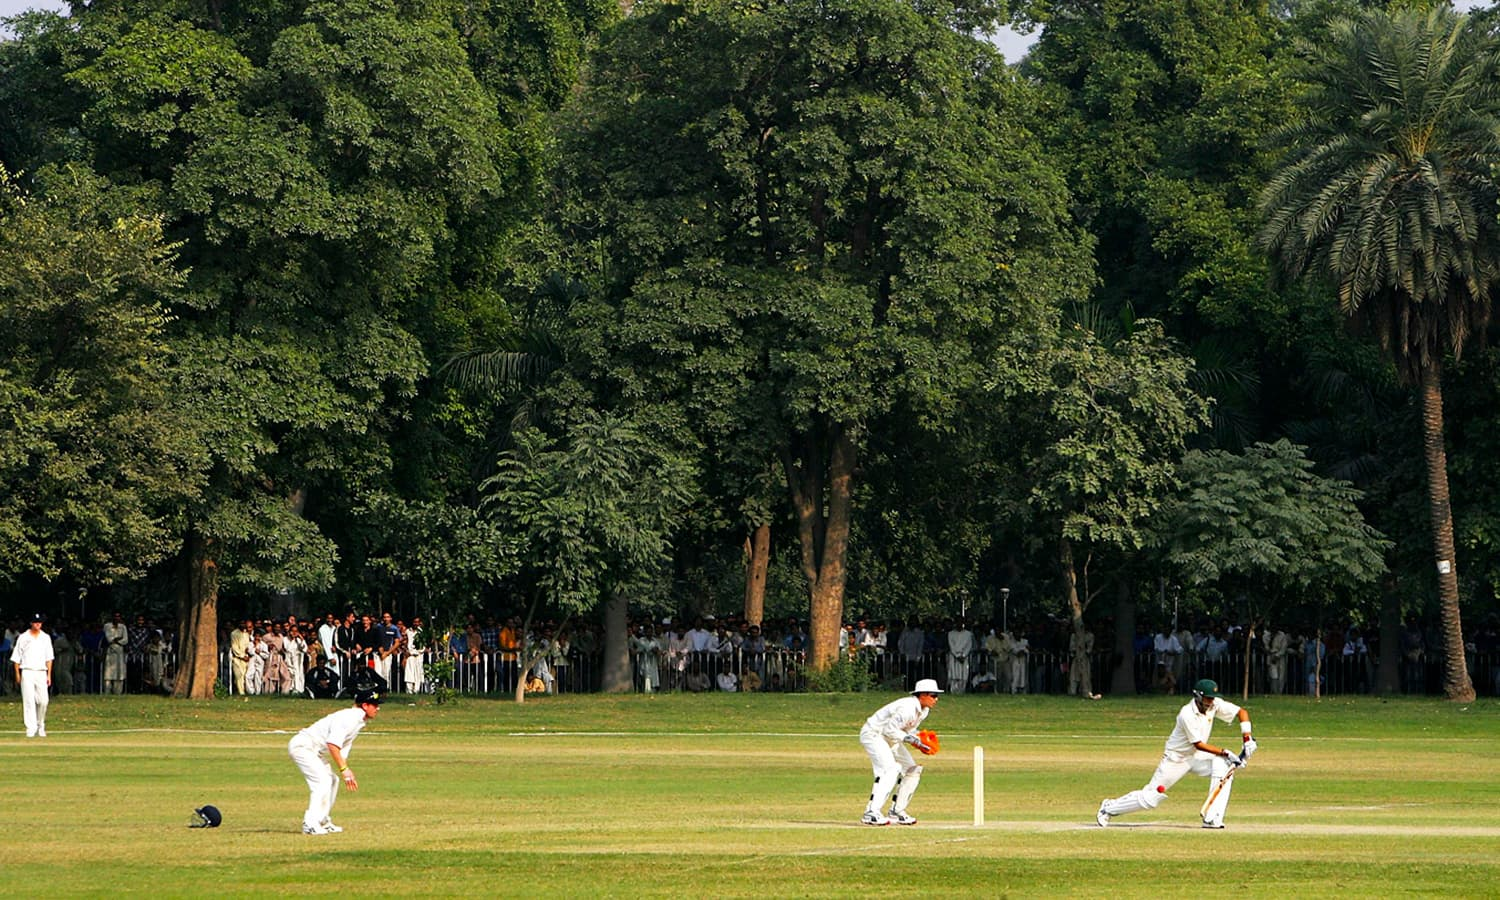 The England side playing a practice game at Bagh-e-Jinnah during its 2005 tour of Pakistan. (Pic: Danyal Rasool)